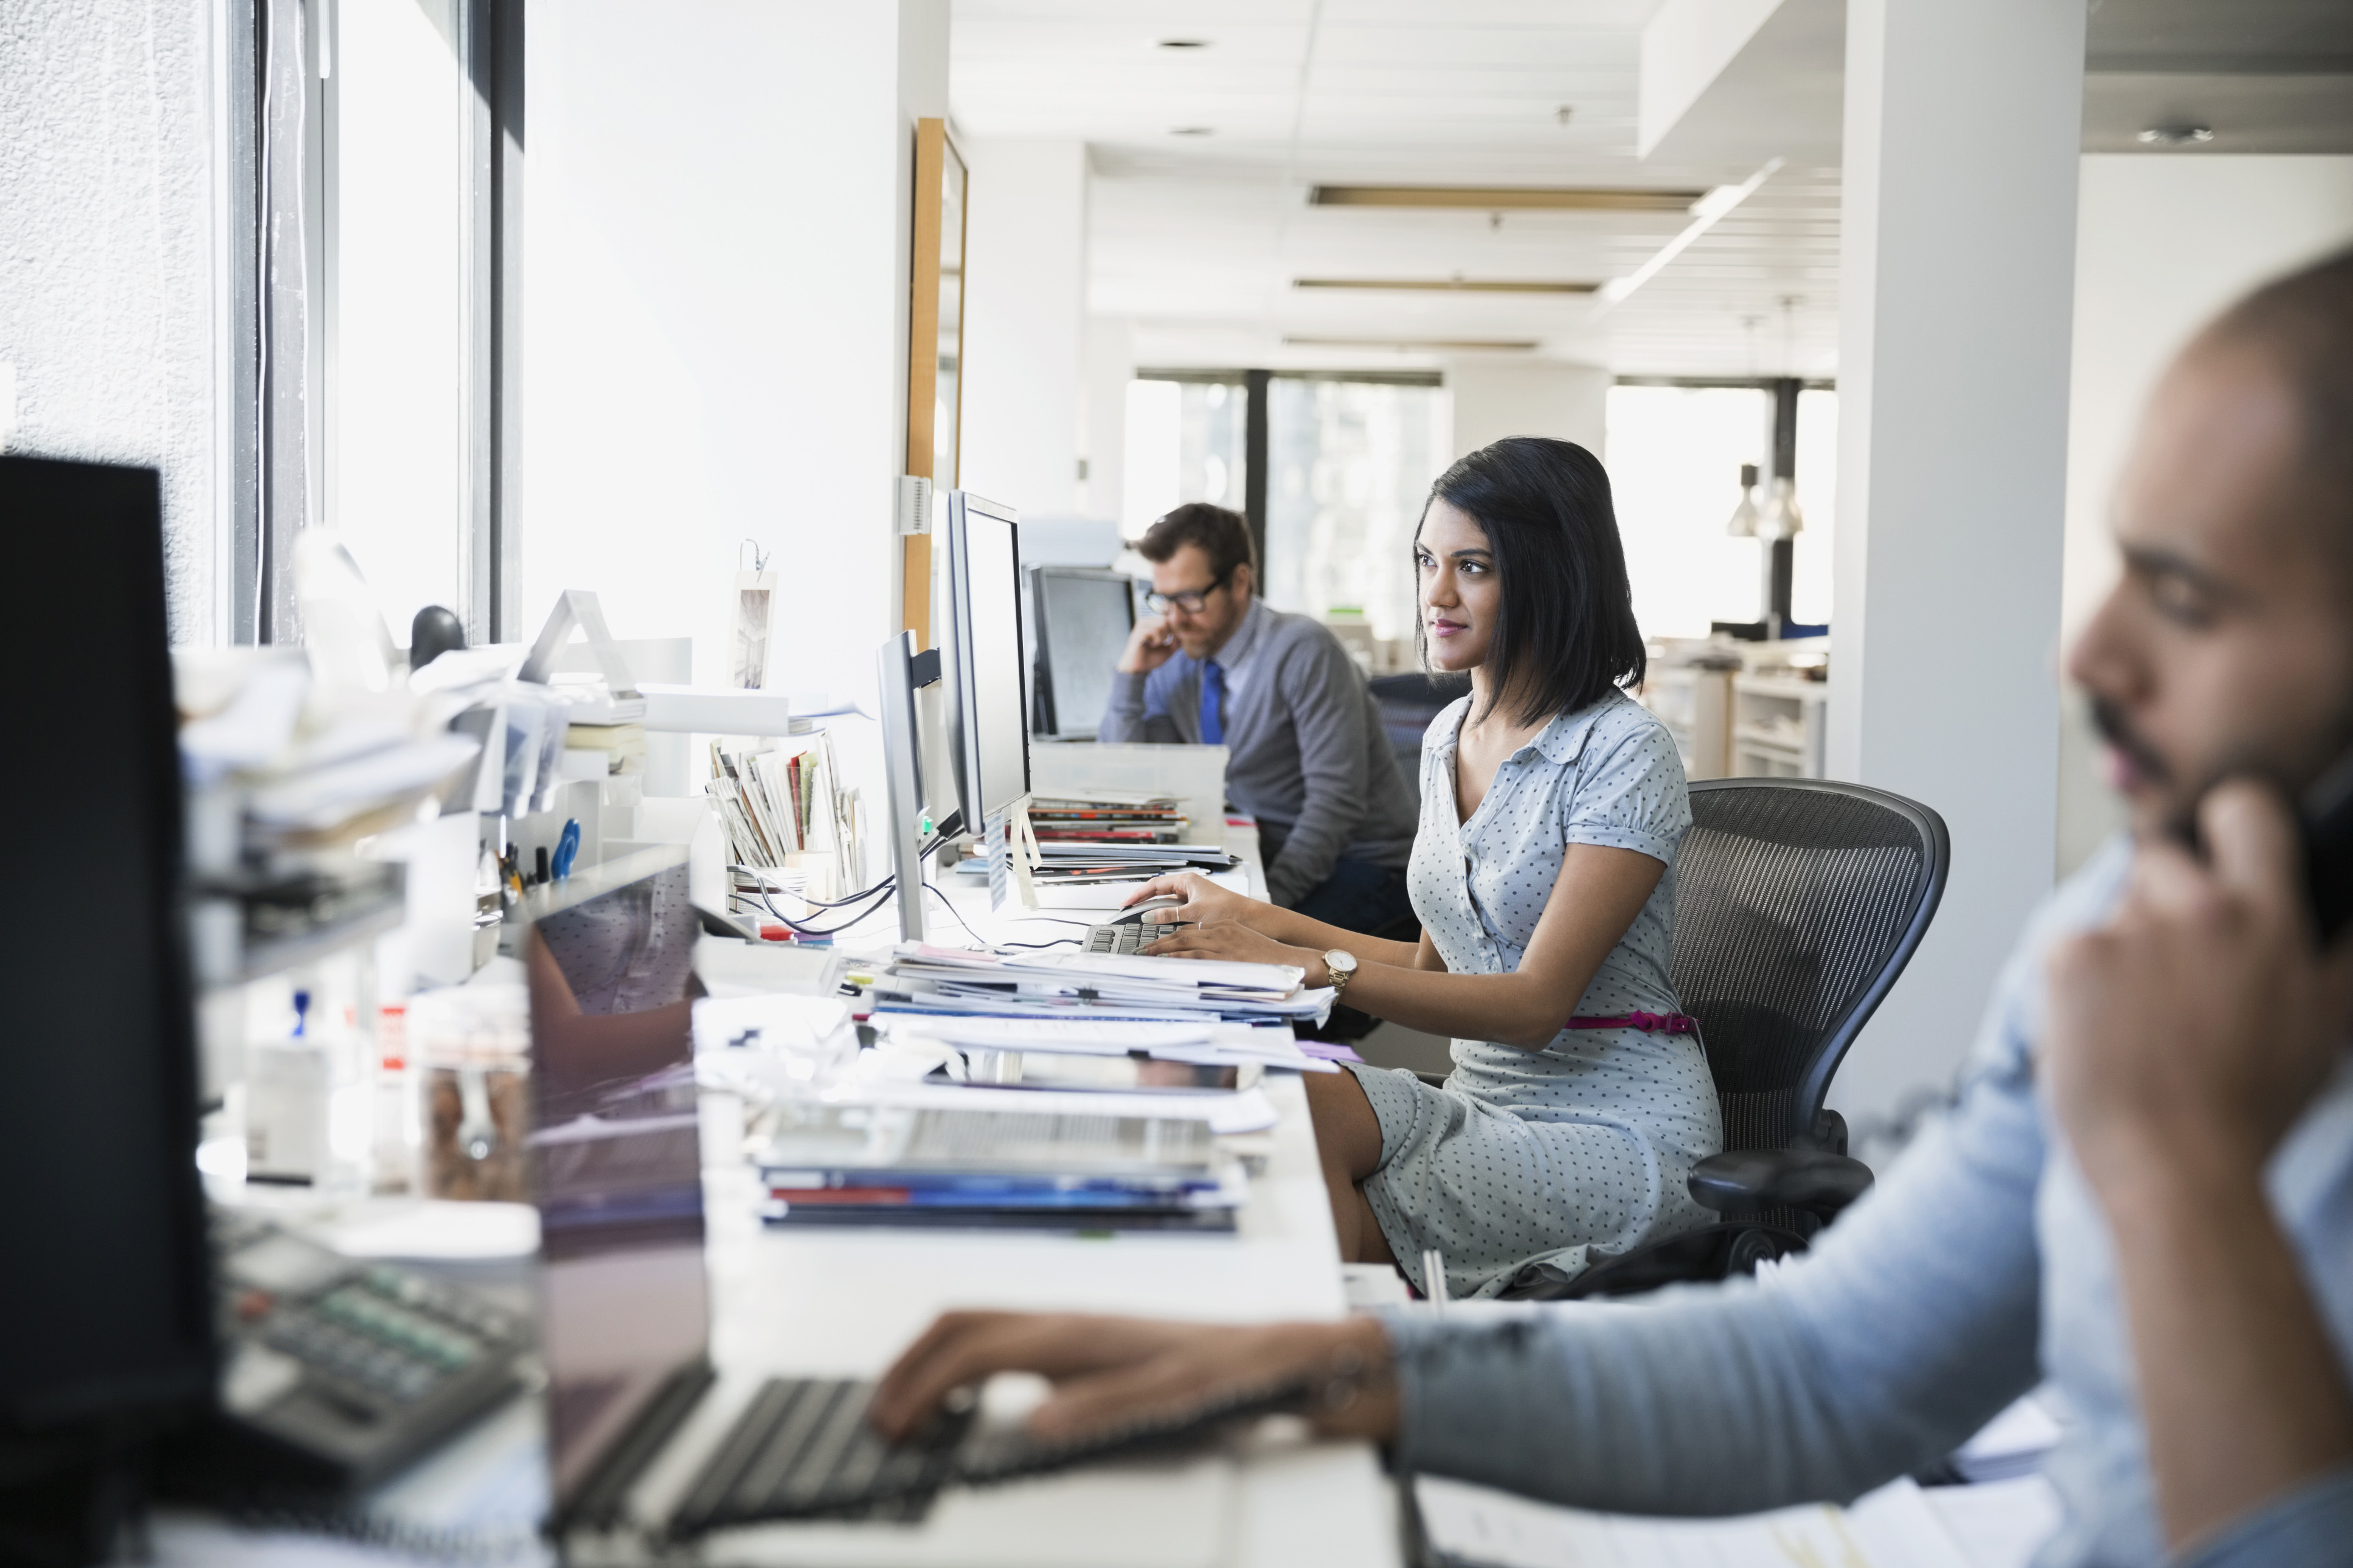 7 Workplace And Employment Trends To Anticipate In 2016